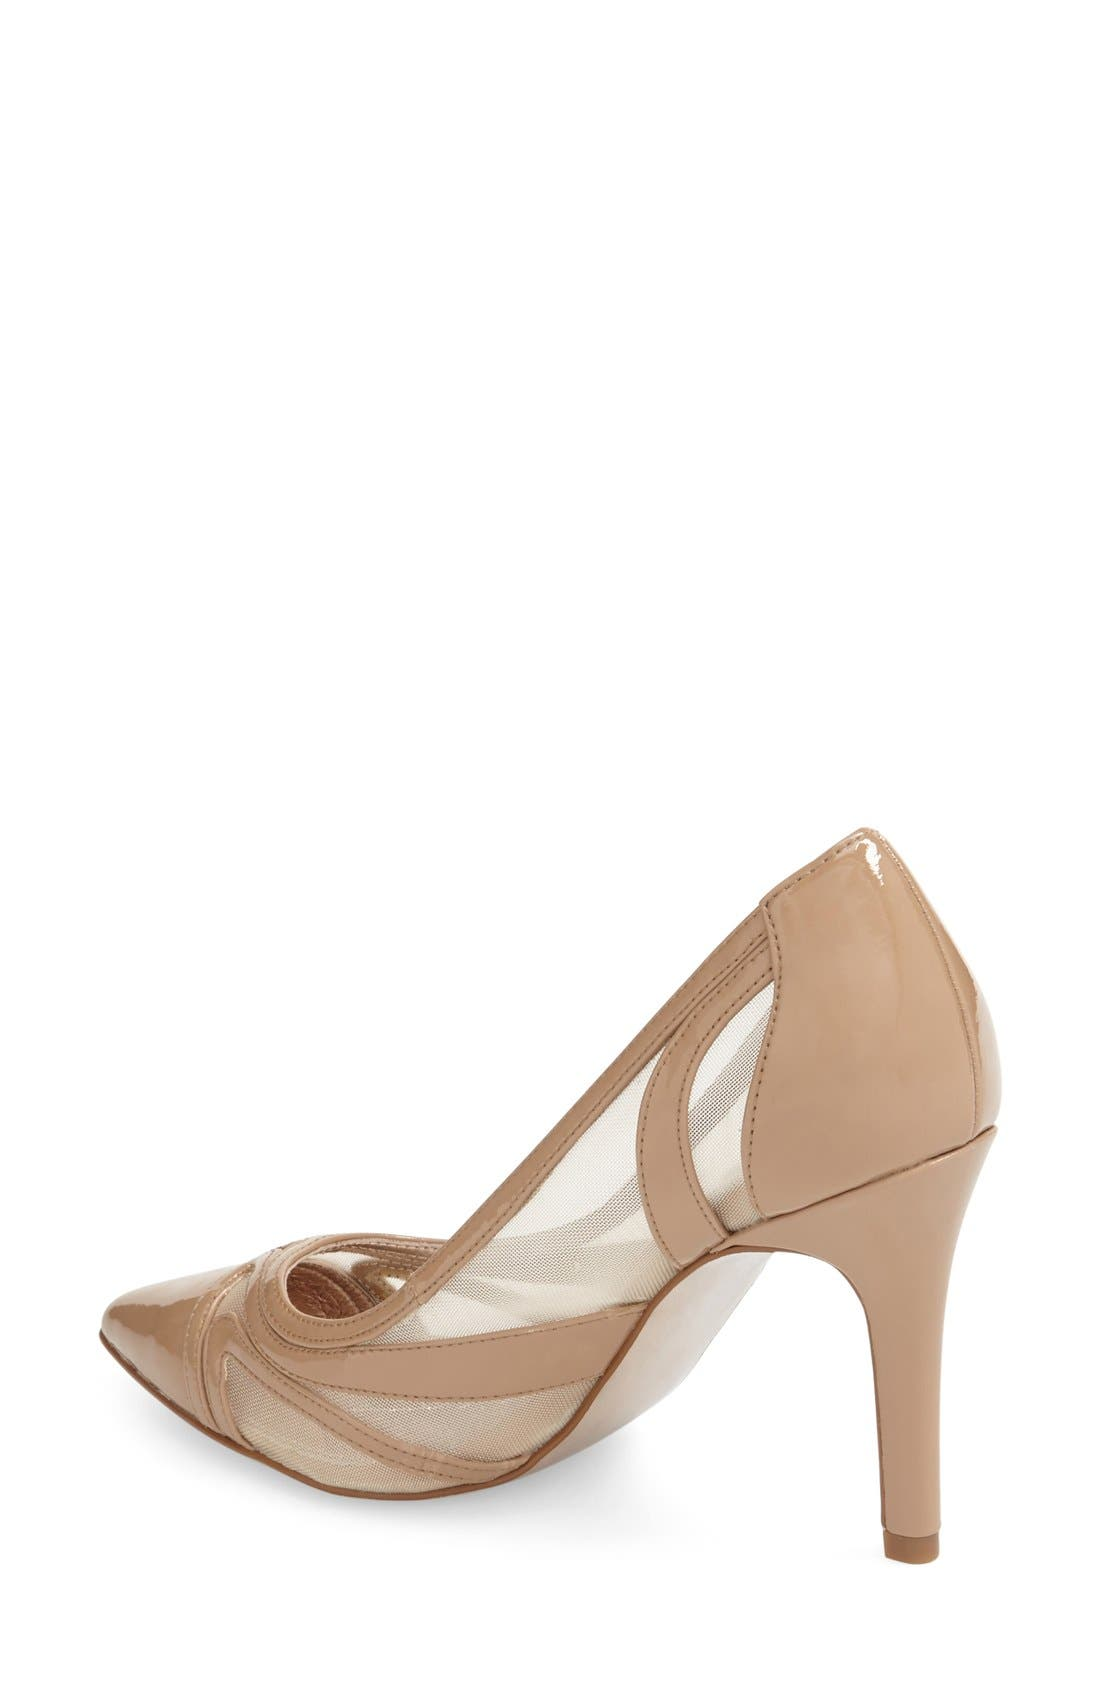 ADRIANNA PAPELL, 'Amal' Pointy Toe Pump, Alternate thumbnail 3, color, 251